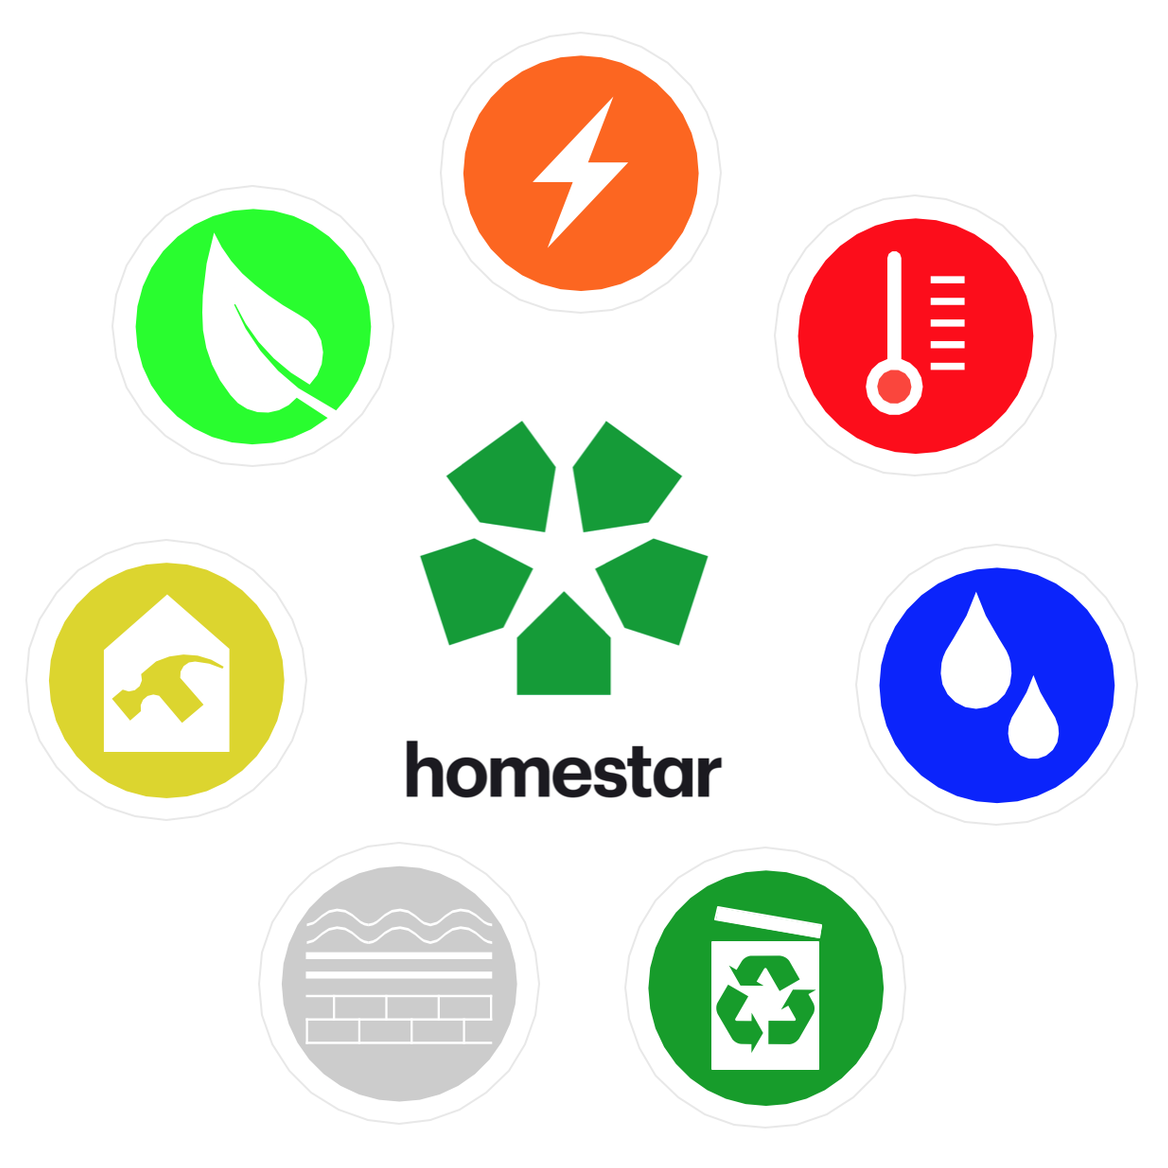 Homestar symbols - no text.png